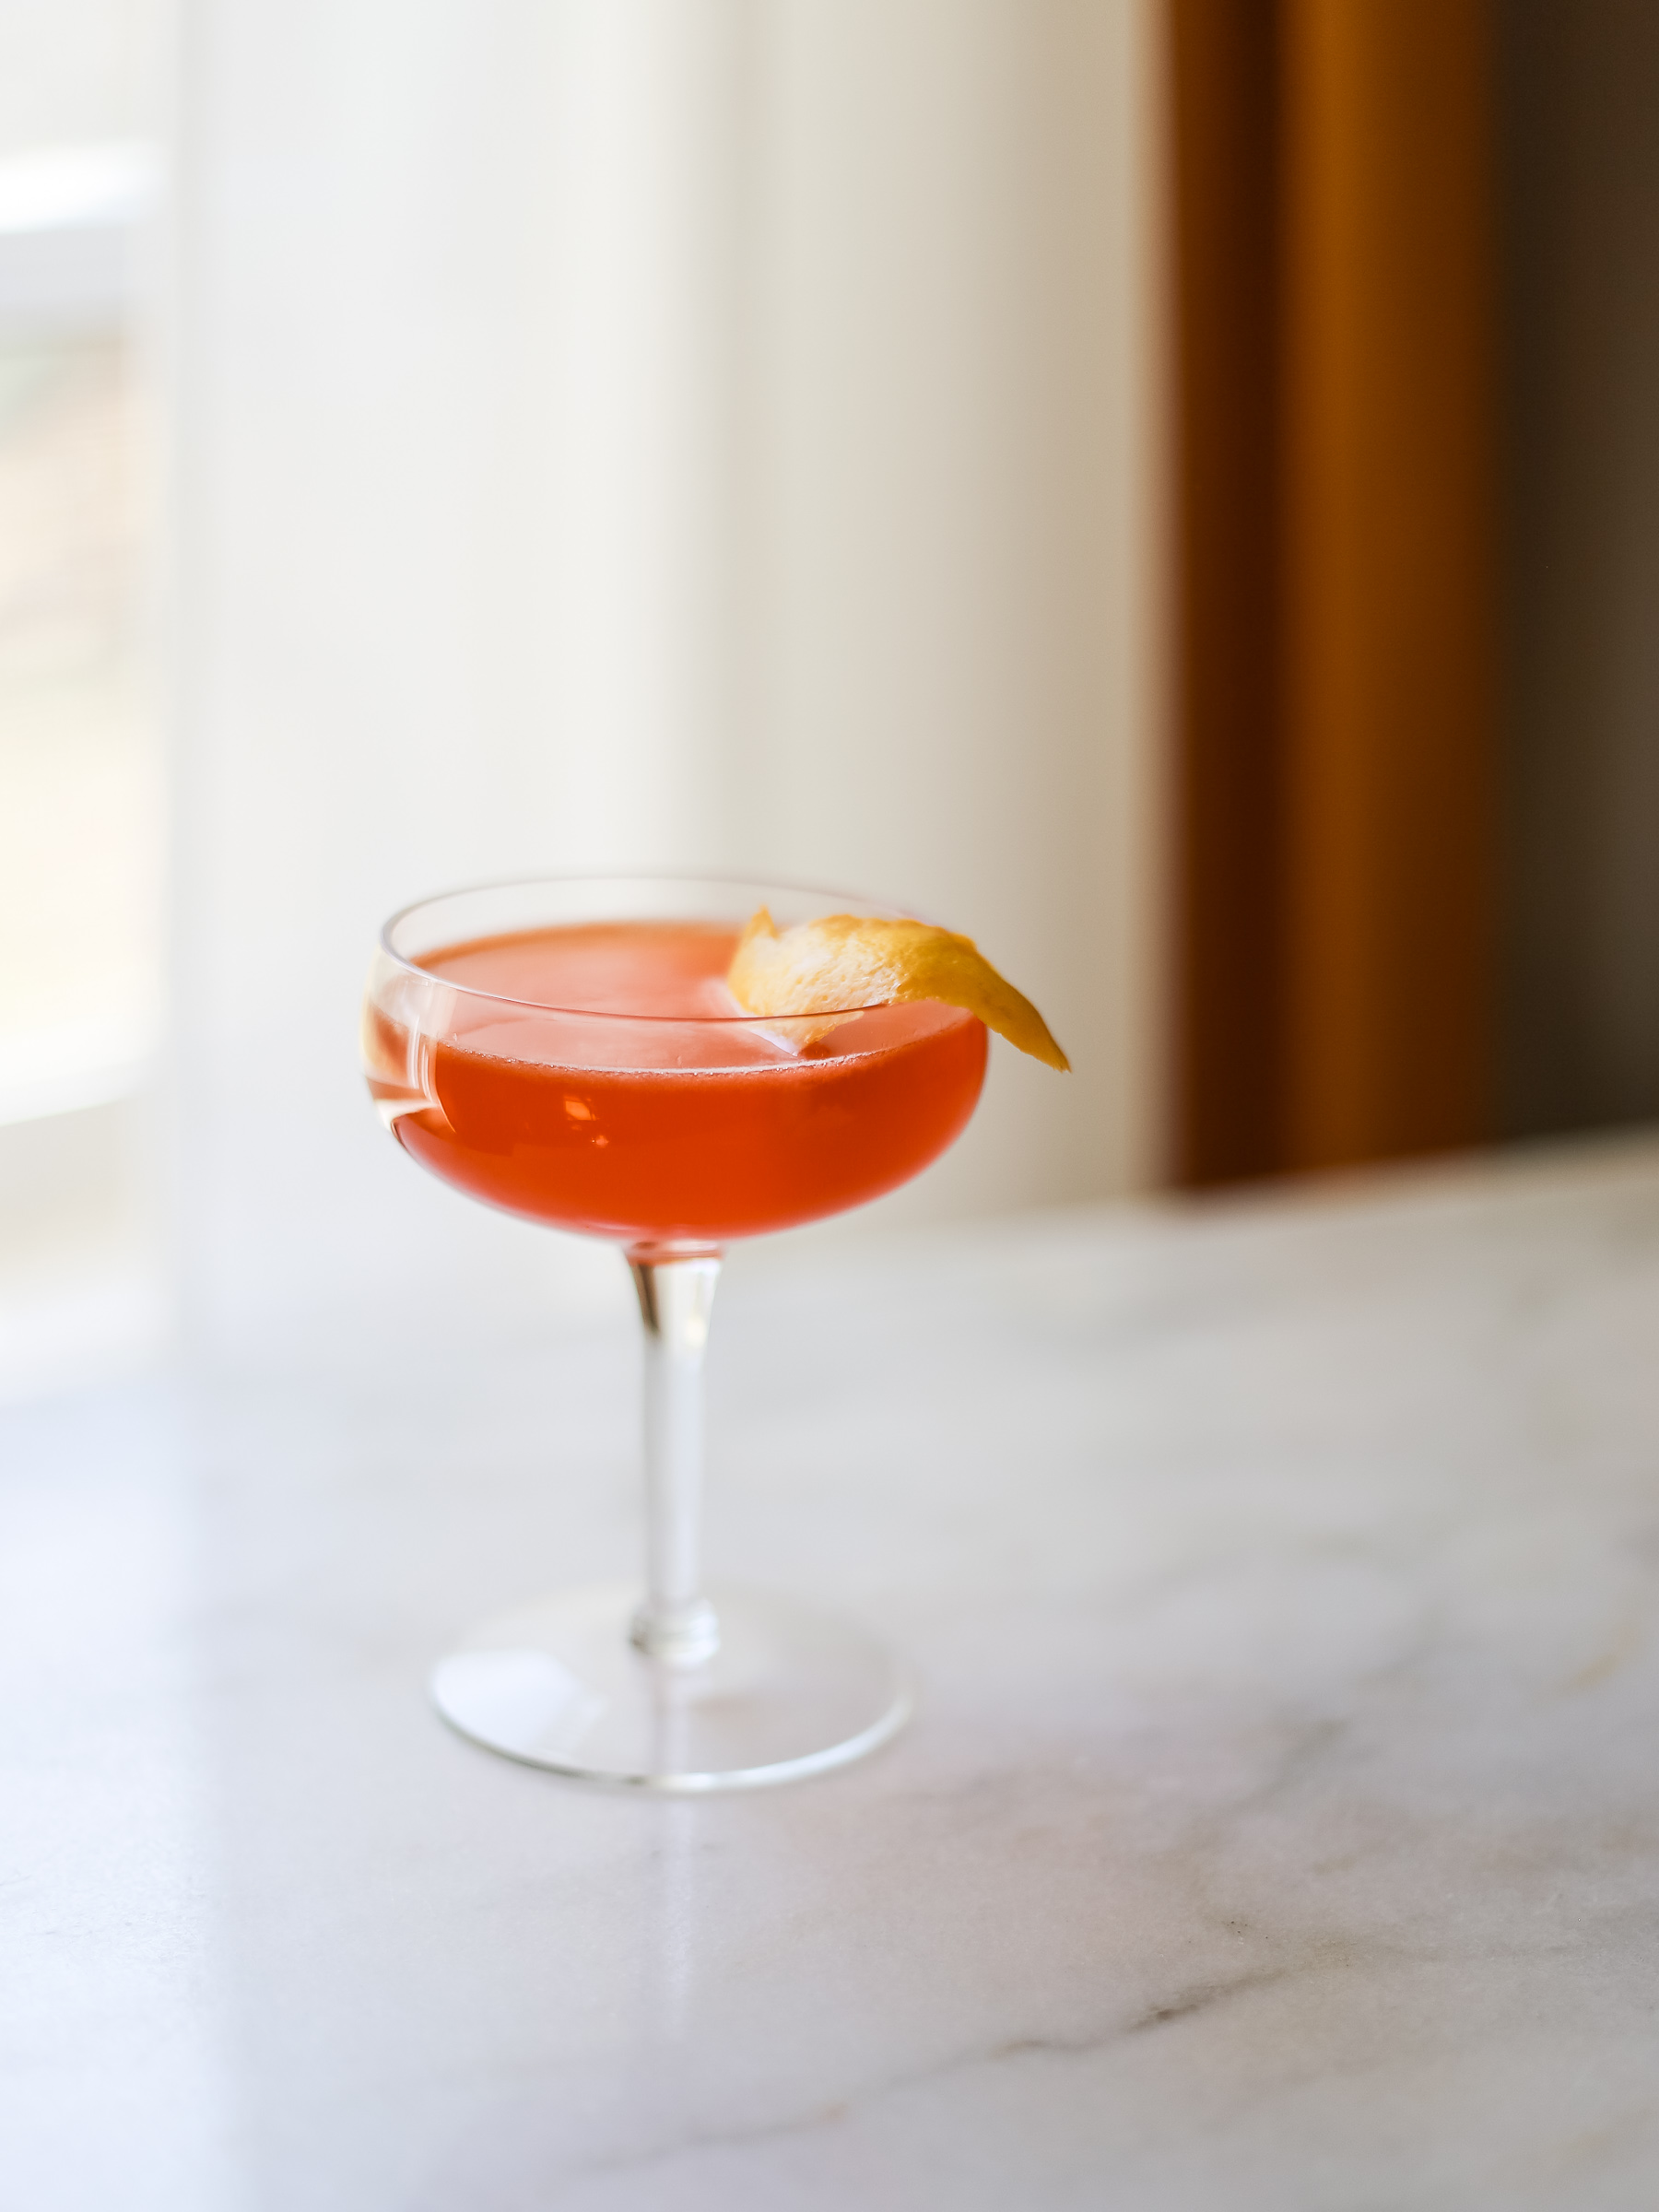 reddish-orange cocktail in a coupe glass